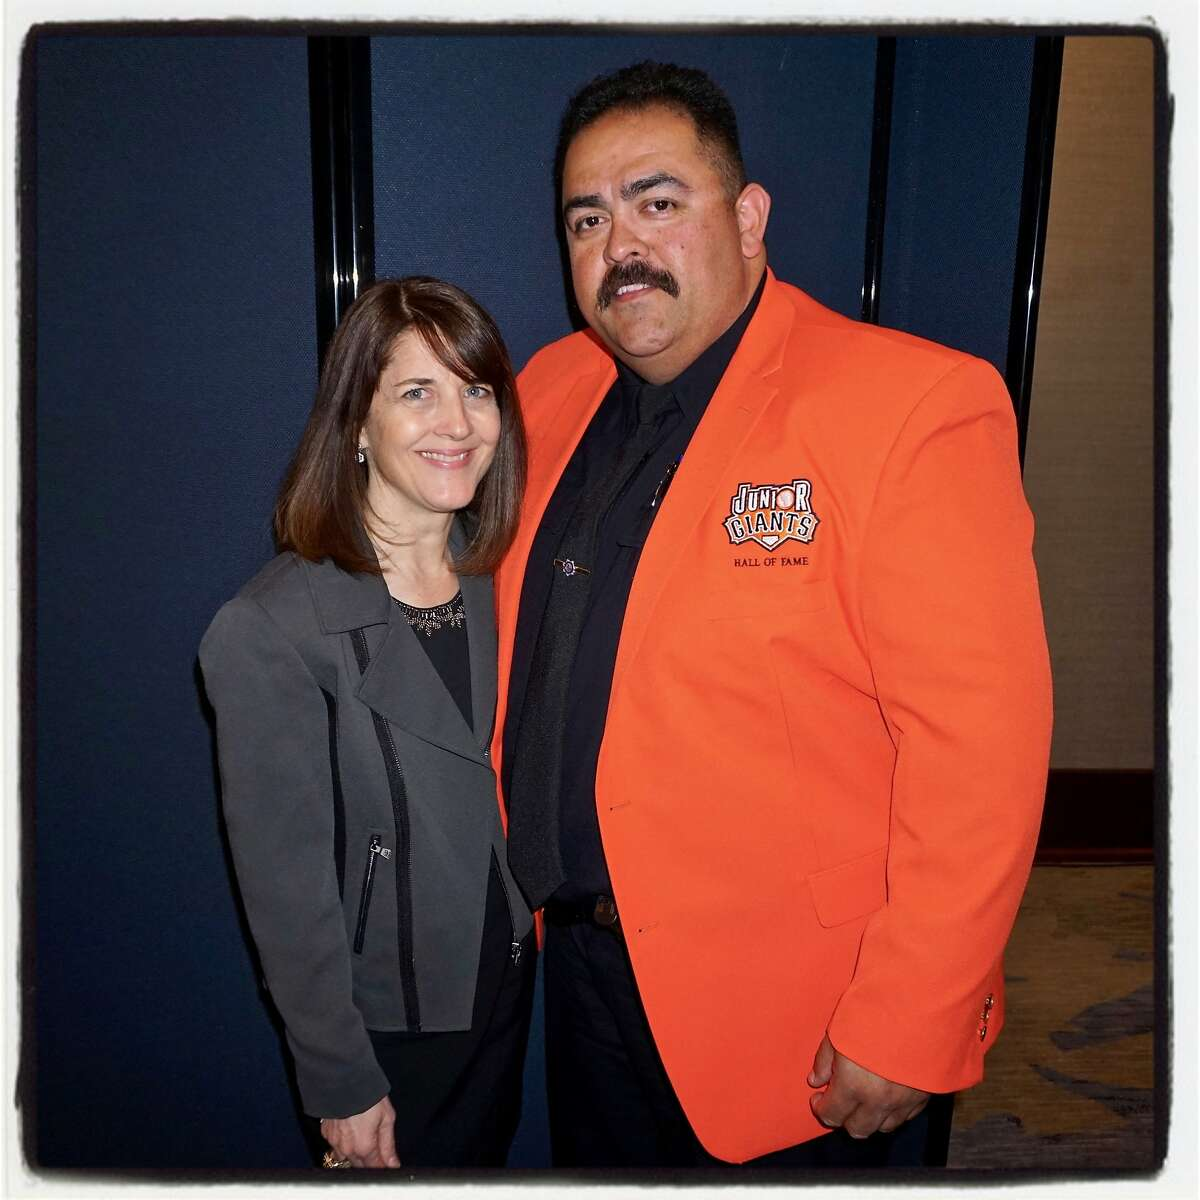 SF Giants Community Fund executive director Sue Petersen and Junior Giants Commissioner Angel Gonzalez at the Play Ball Lunch. March 31, 2017.